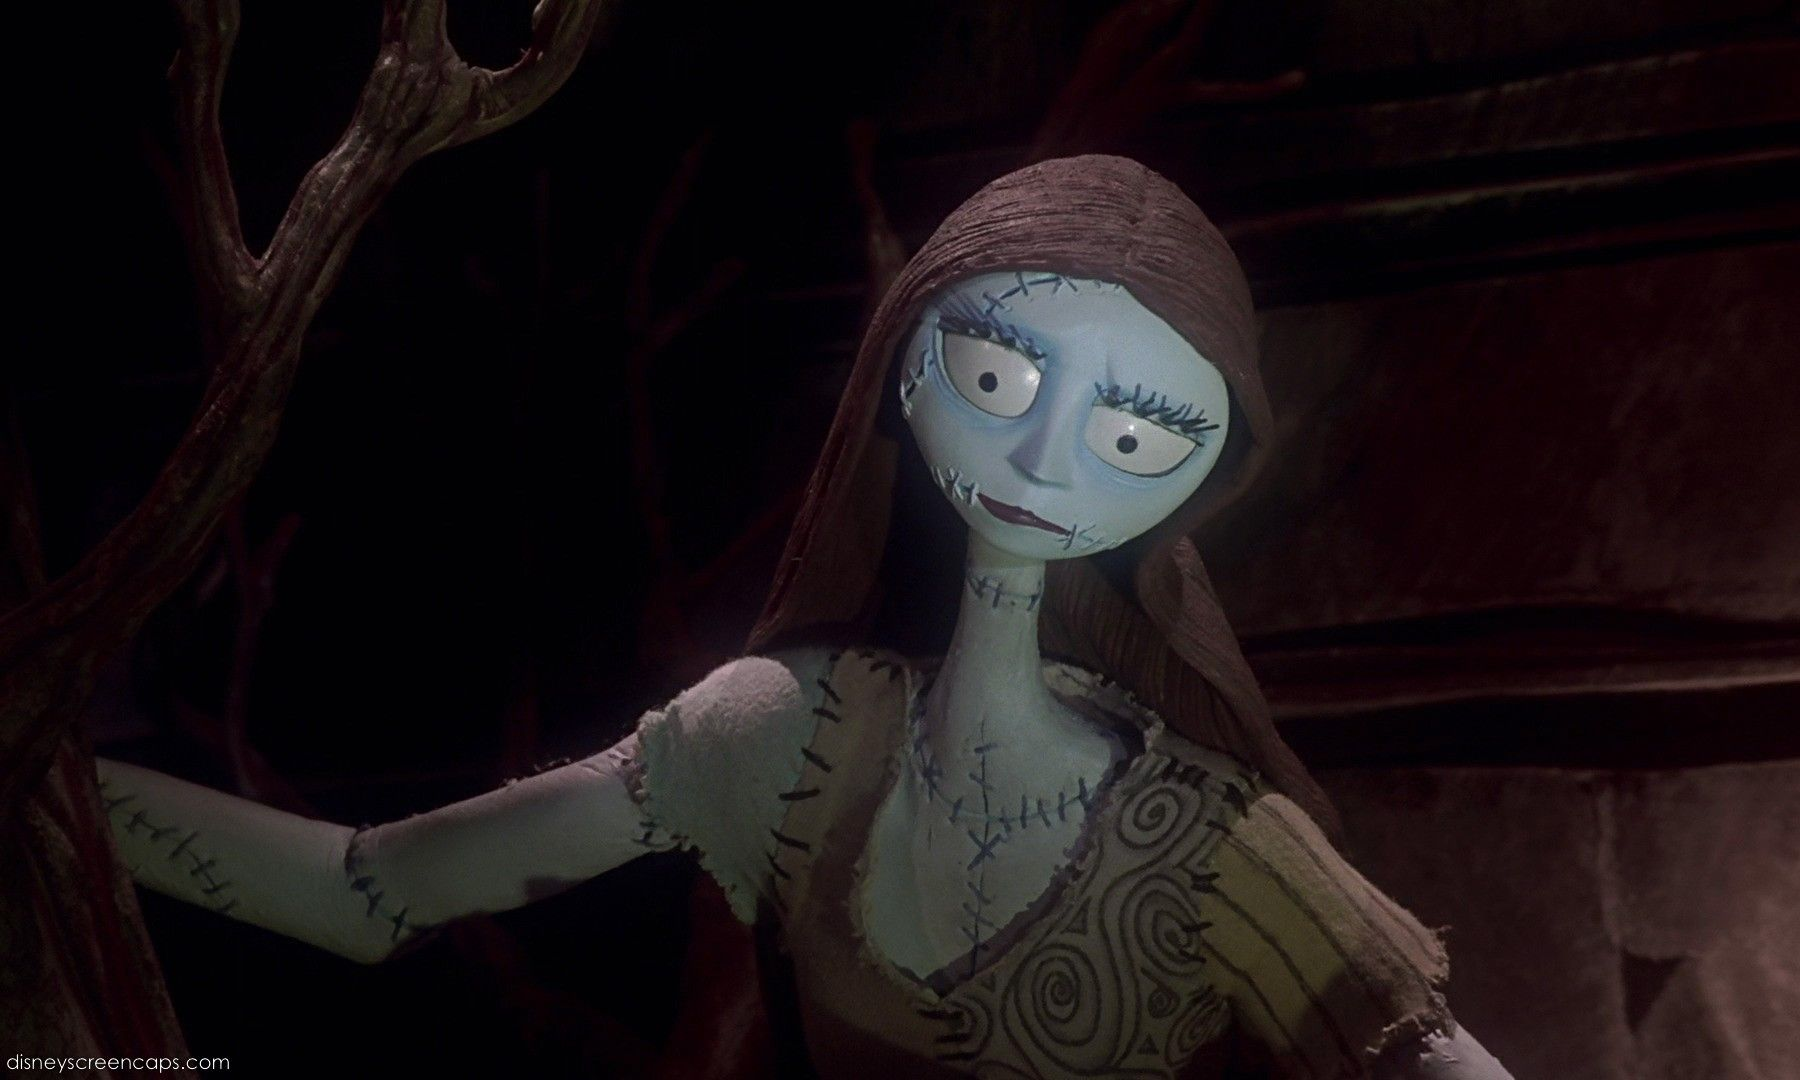 sally nightmare before christmas images from movie - Google Search ...